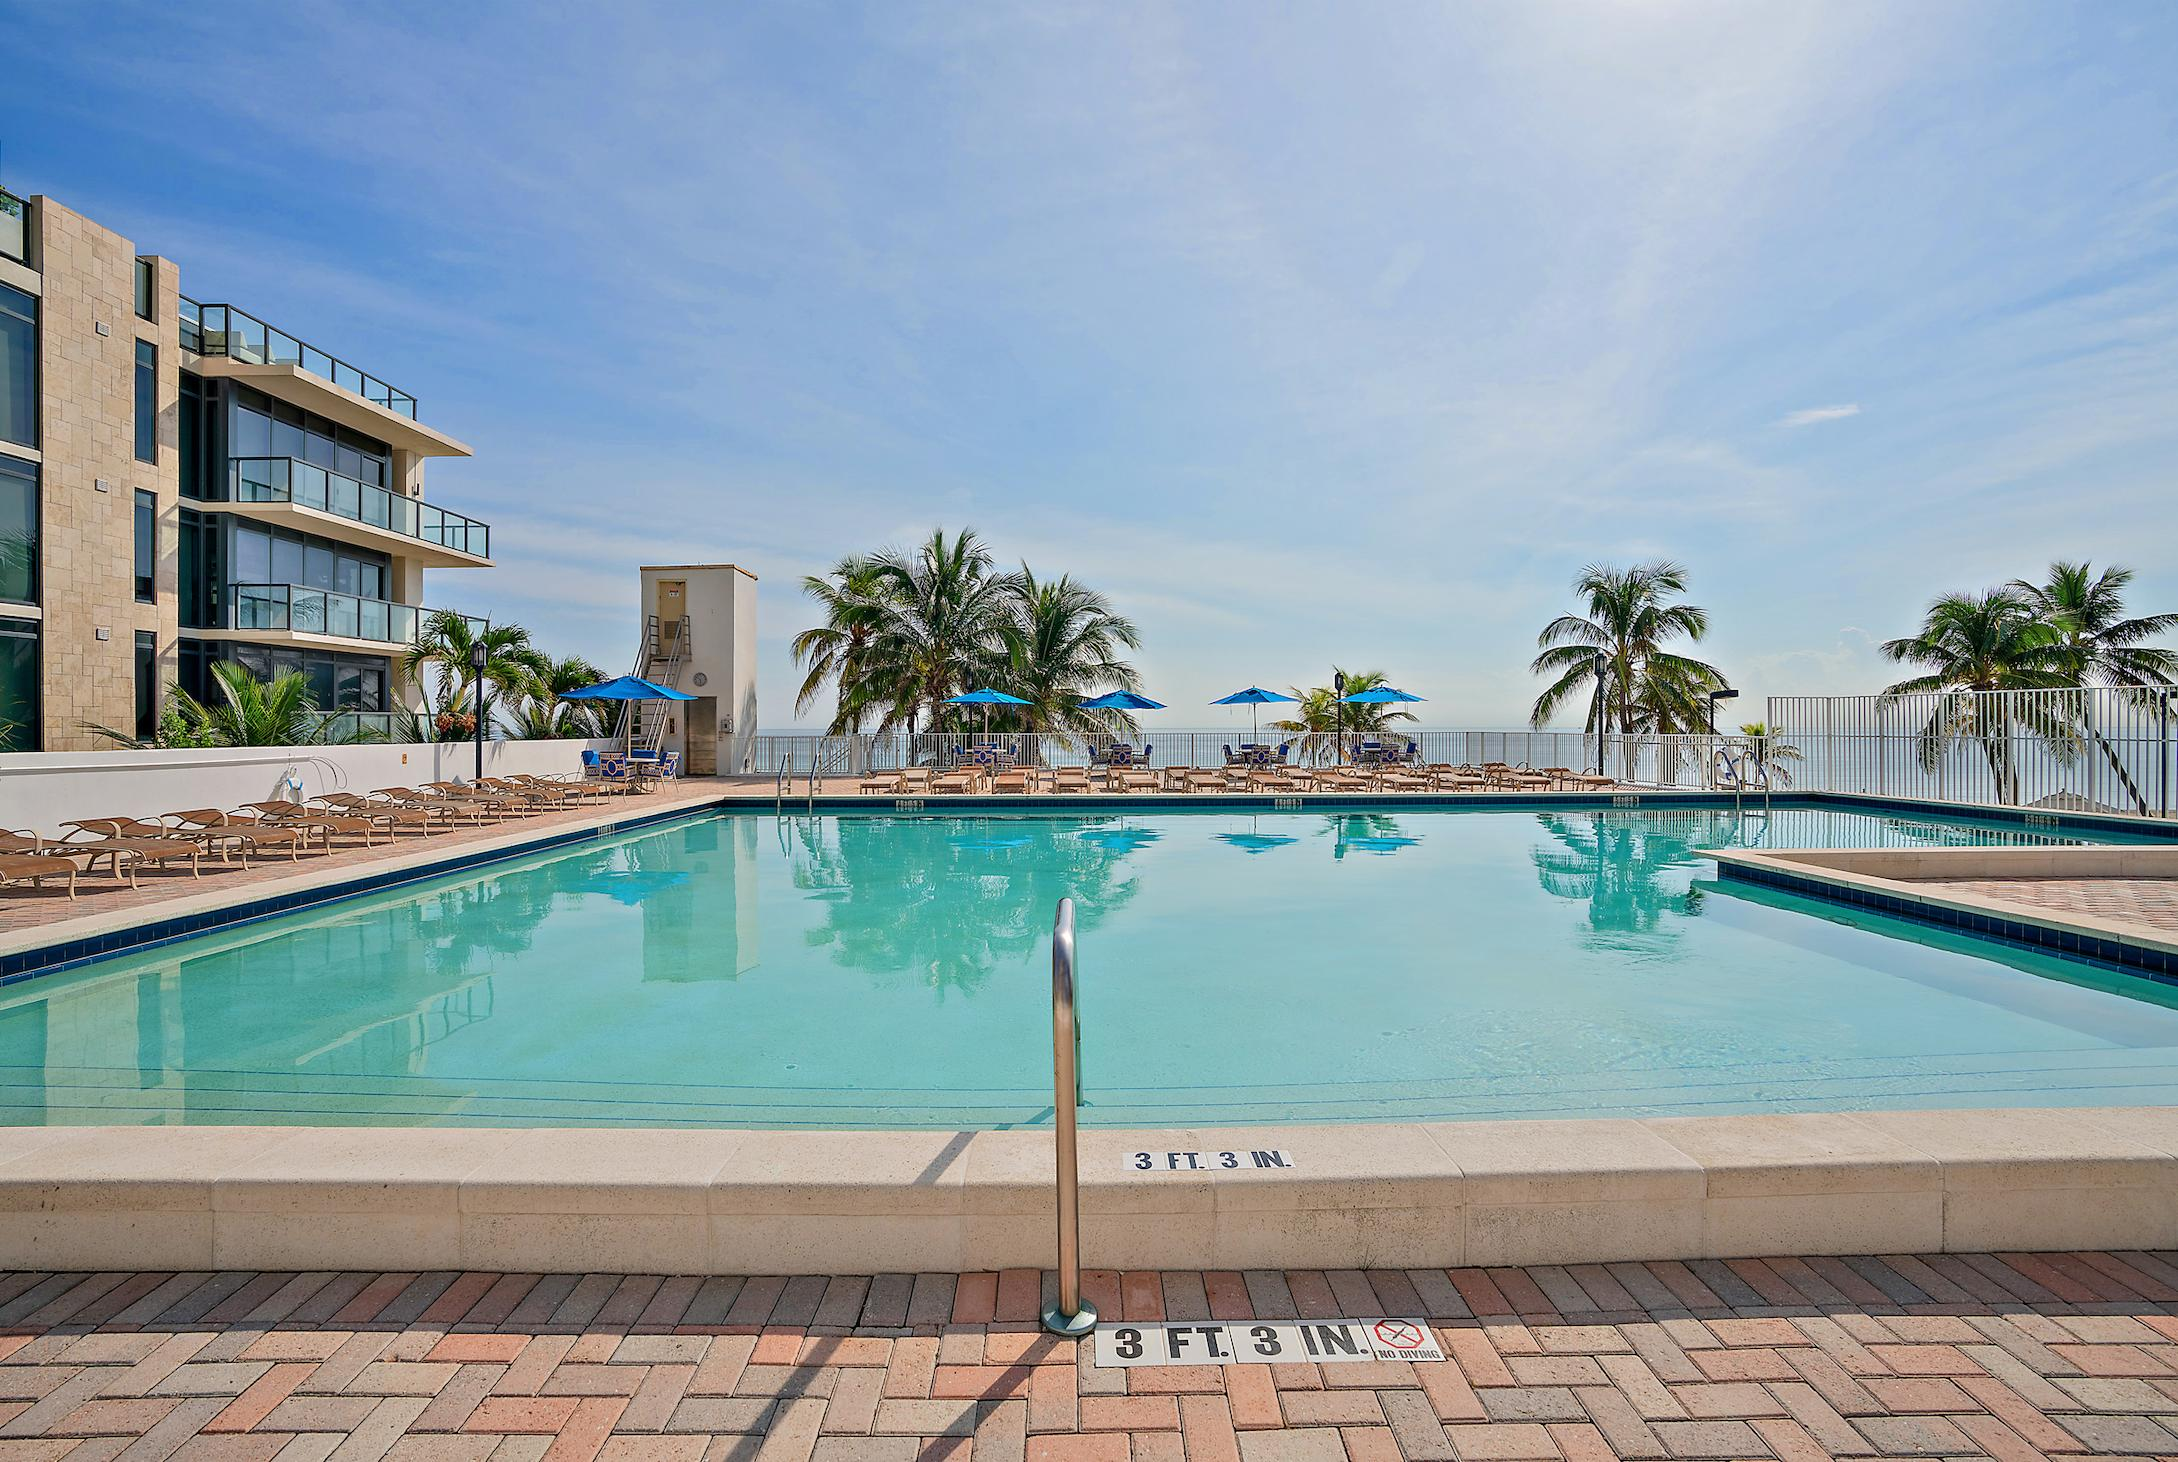 2201 S Ocean Drive 203 Hollywood, FL 33019